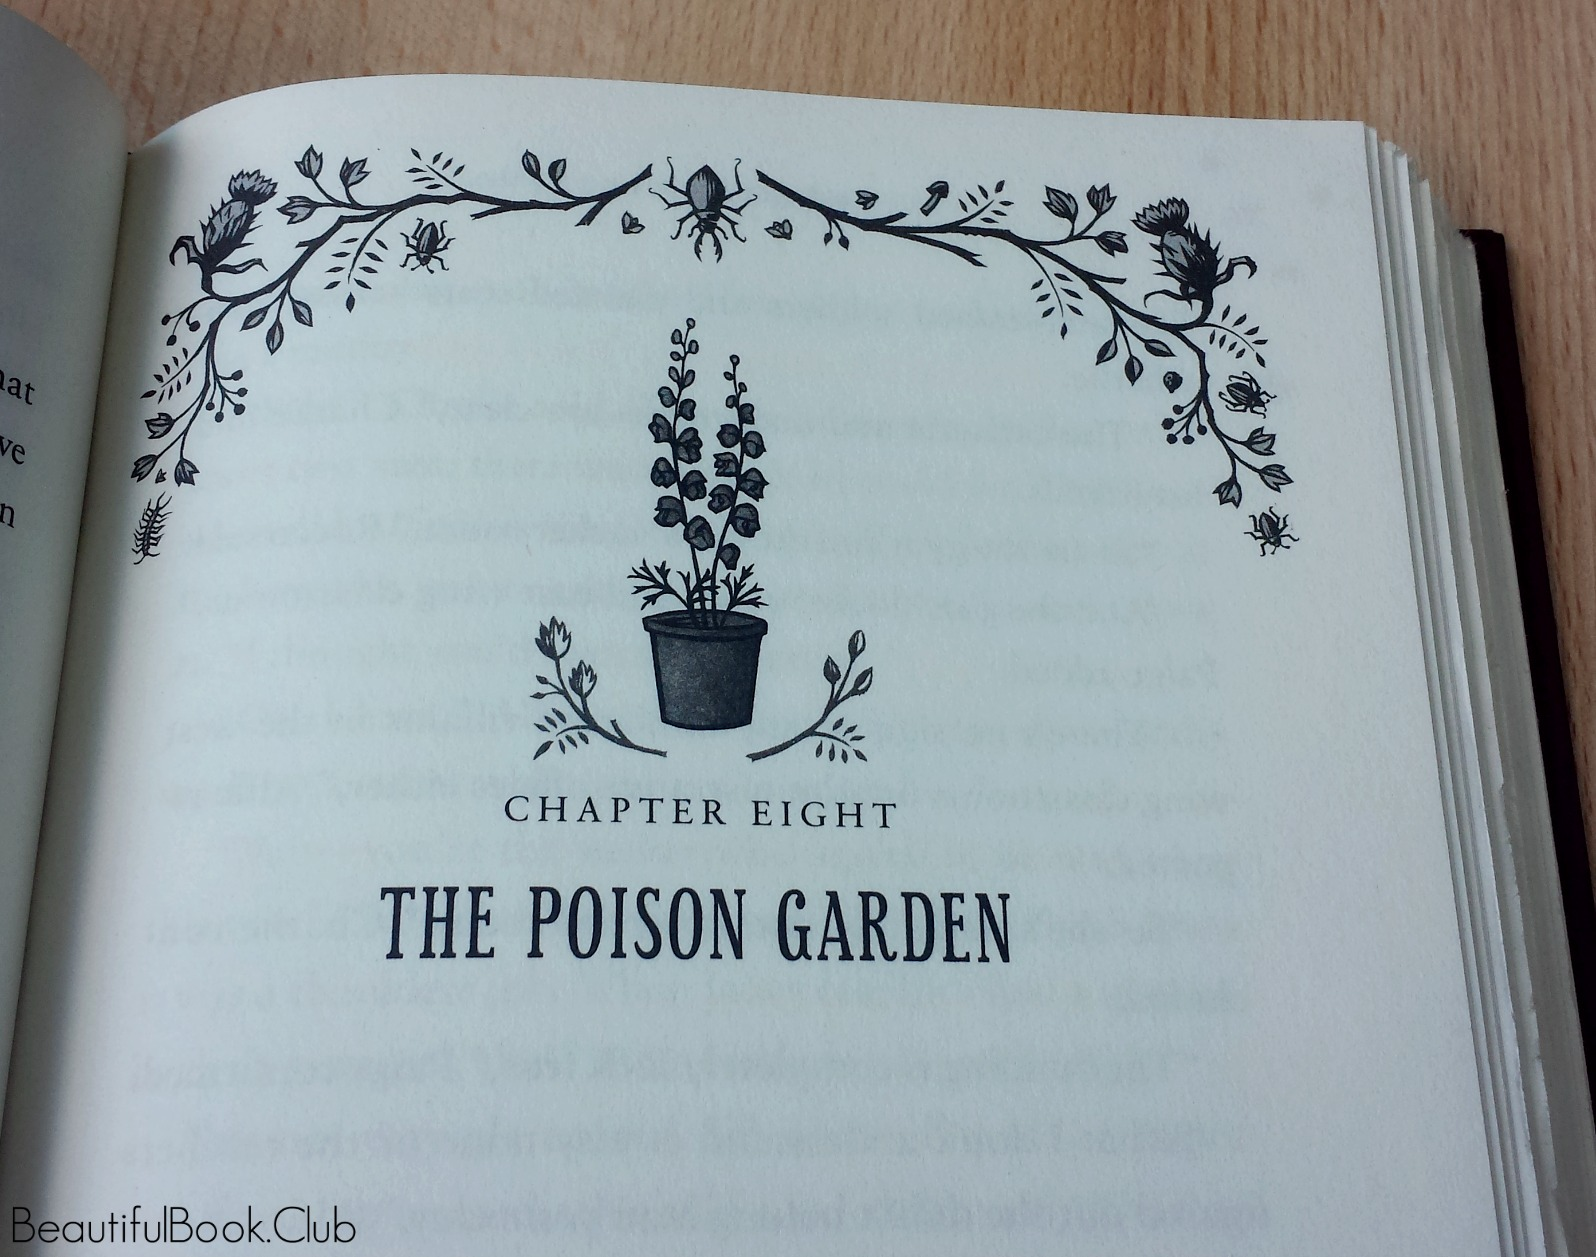 The poison garden chapter 8 by jason segel and kirsten miller